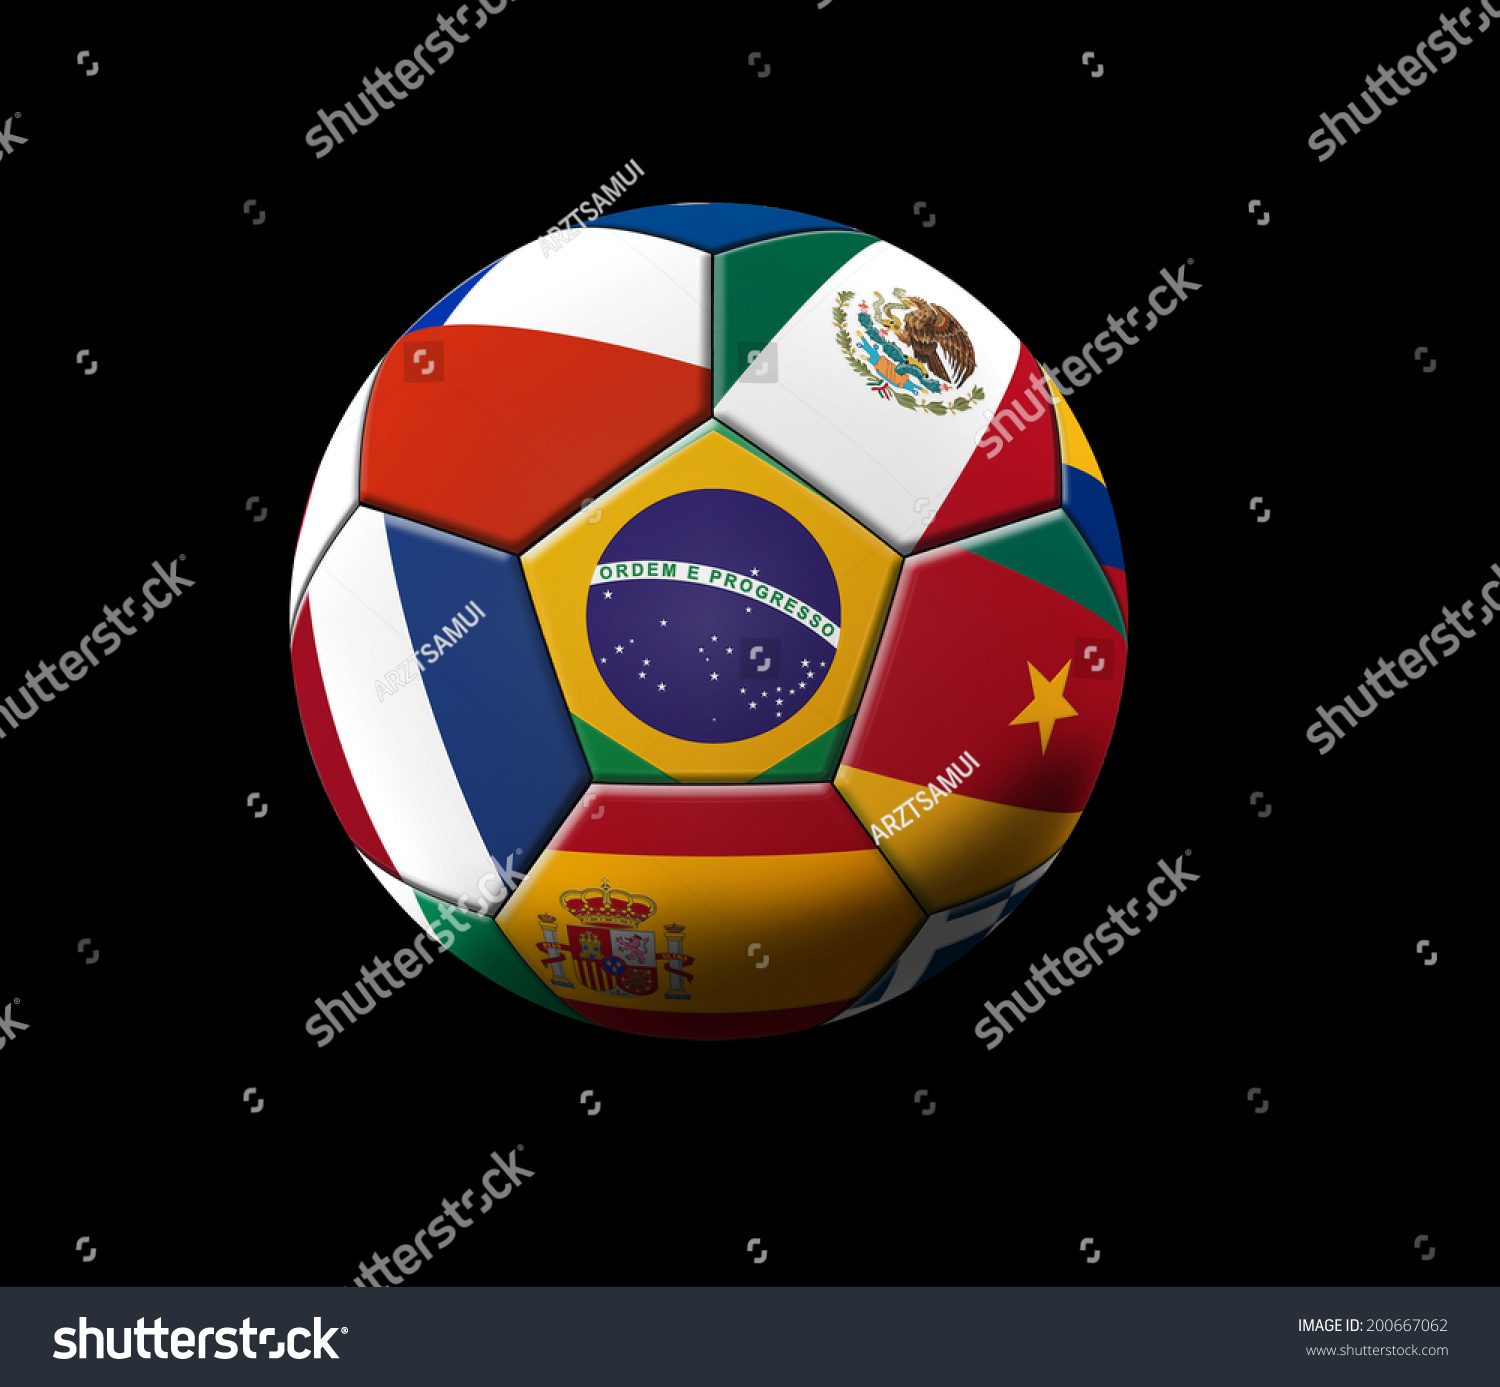 soccer artwork championship brazil stock illustration 200667062